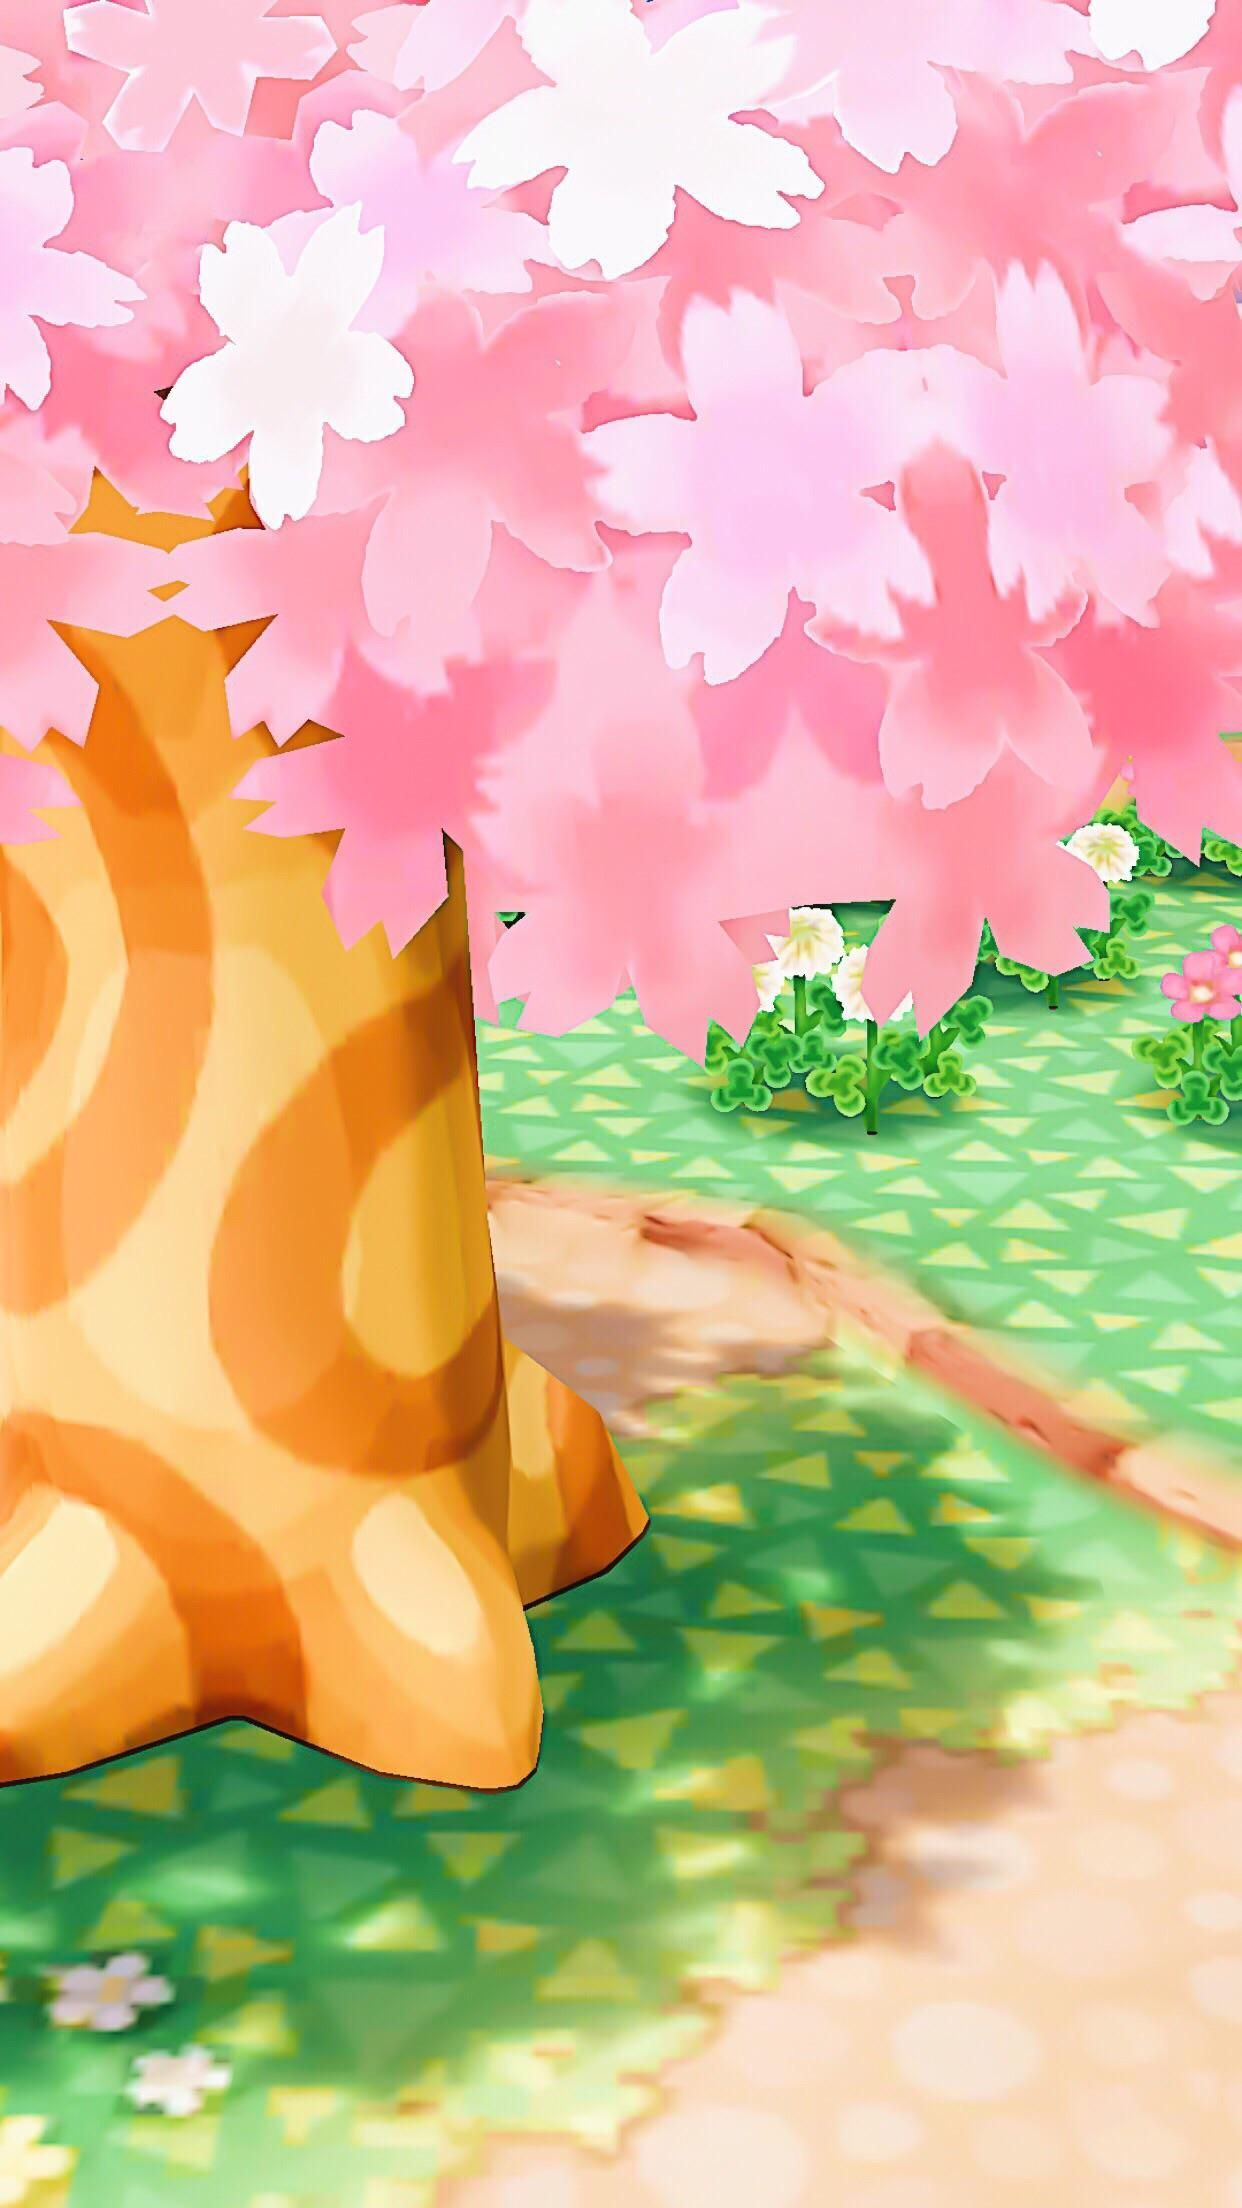 Animal Crossing In 2020 Animal Wallpaper Animal Crossing Game Animal Crossing